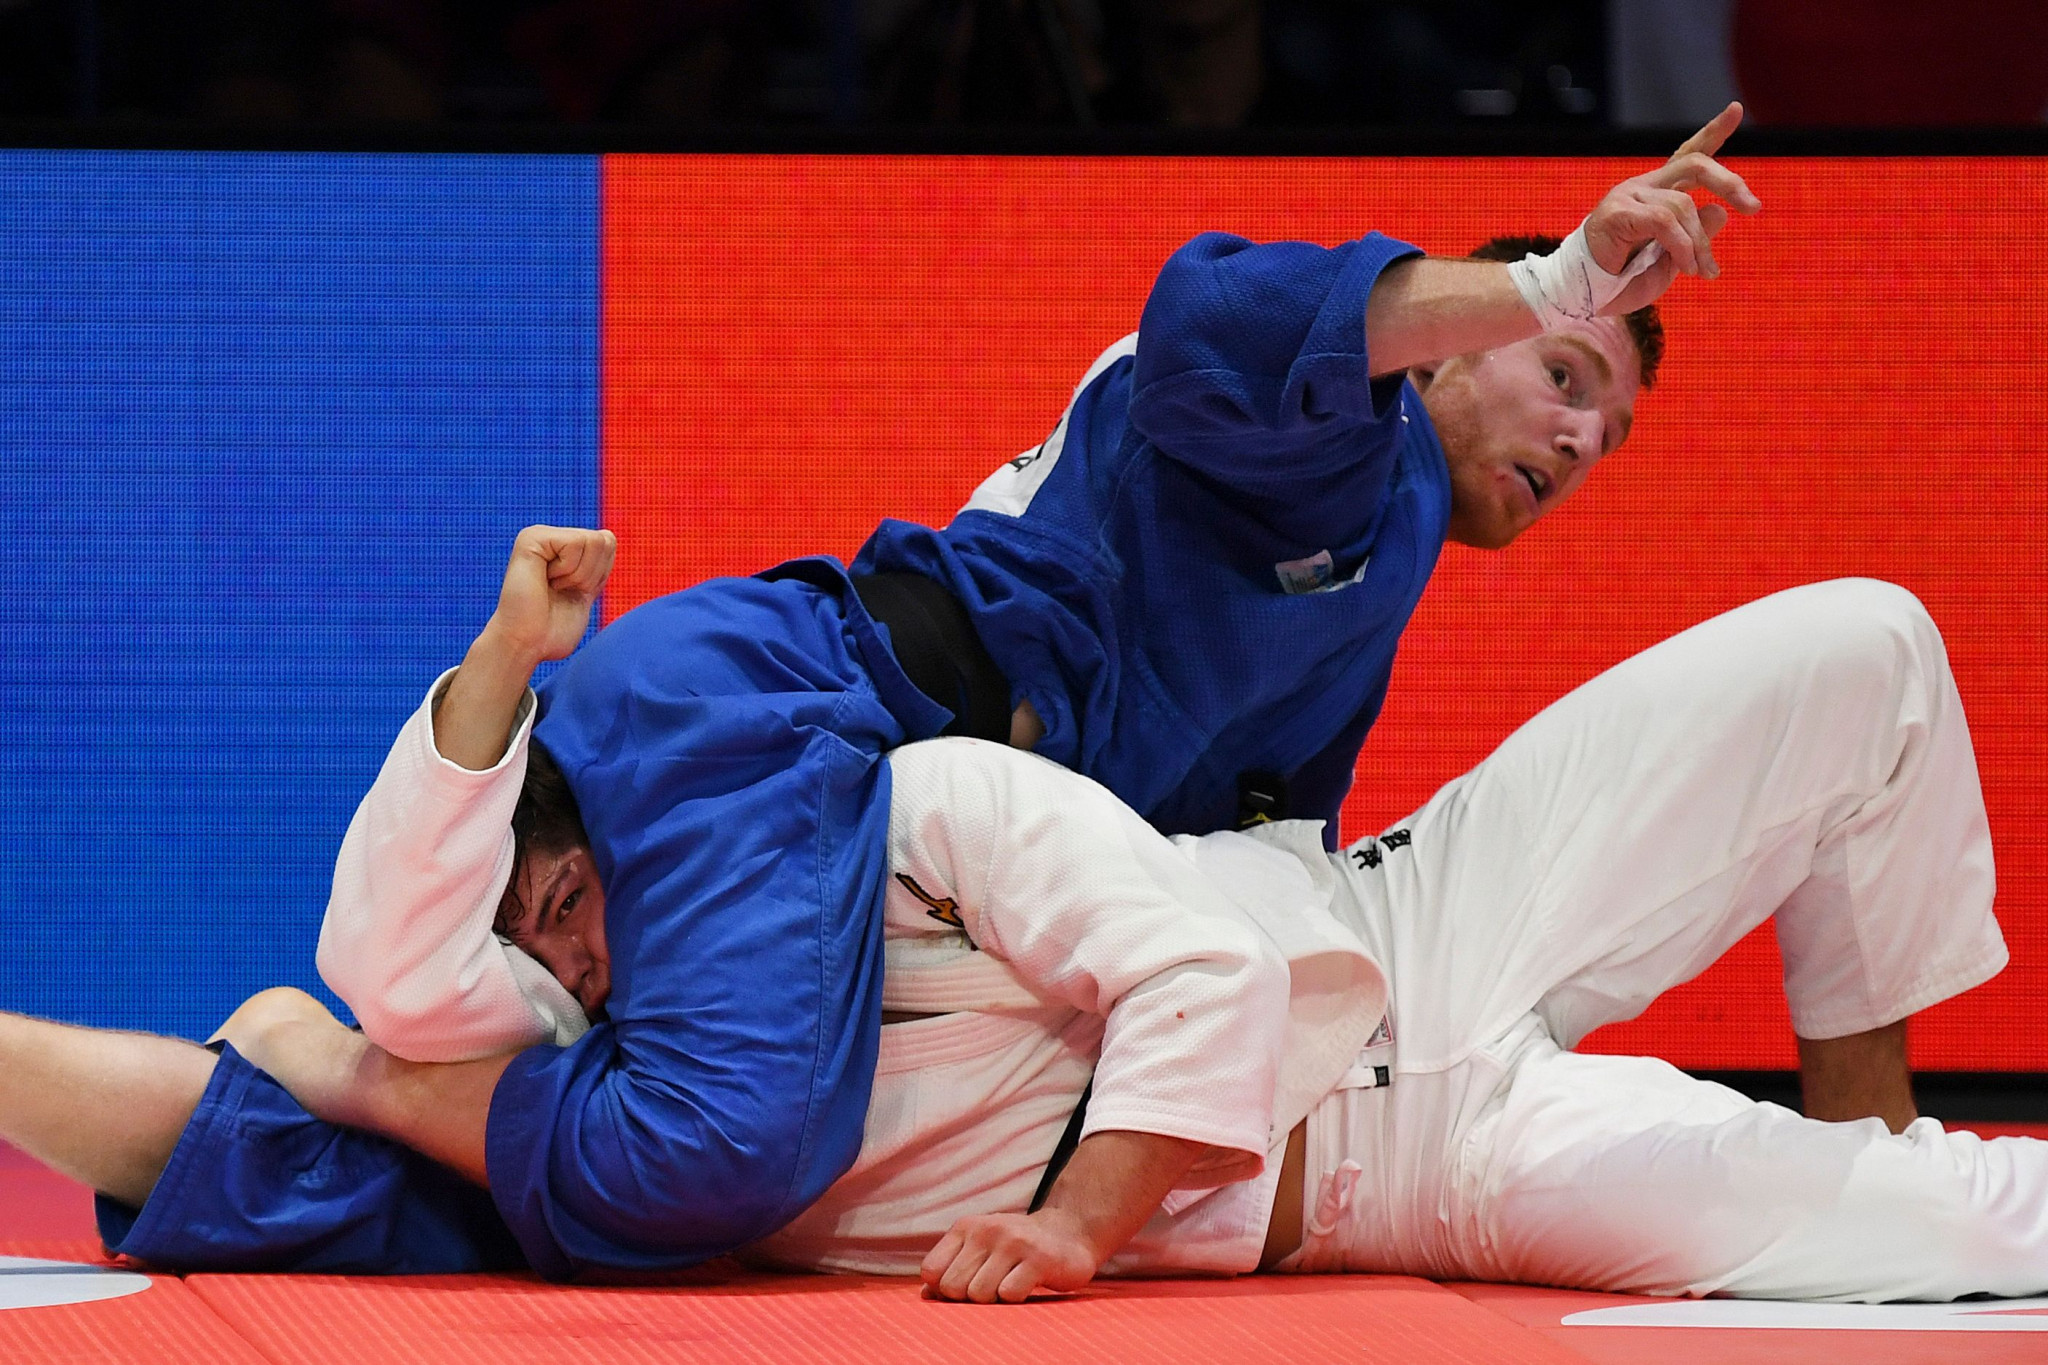 Axel Clerget, blue, beat Sanshiro Murao to ensure the final went down to the last fight ©Getty Images